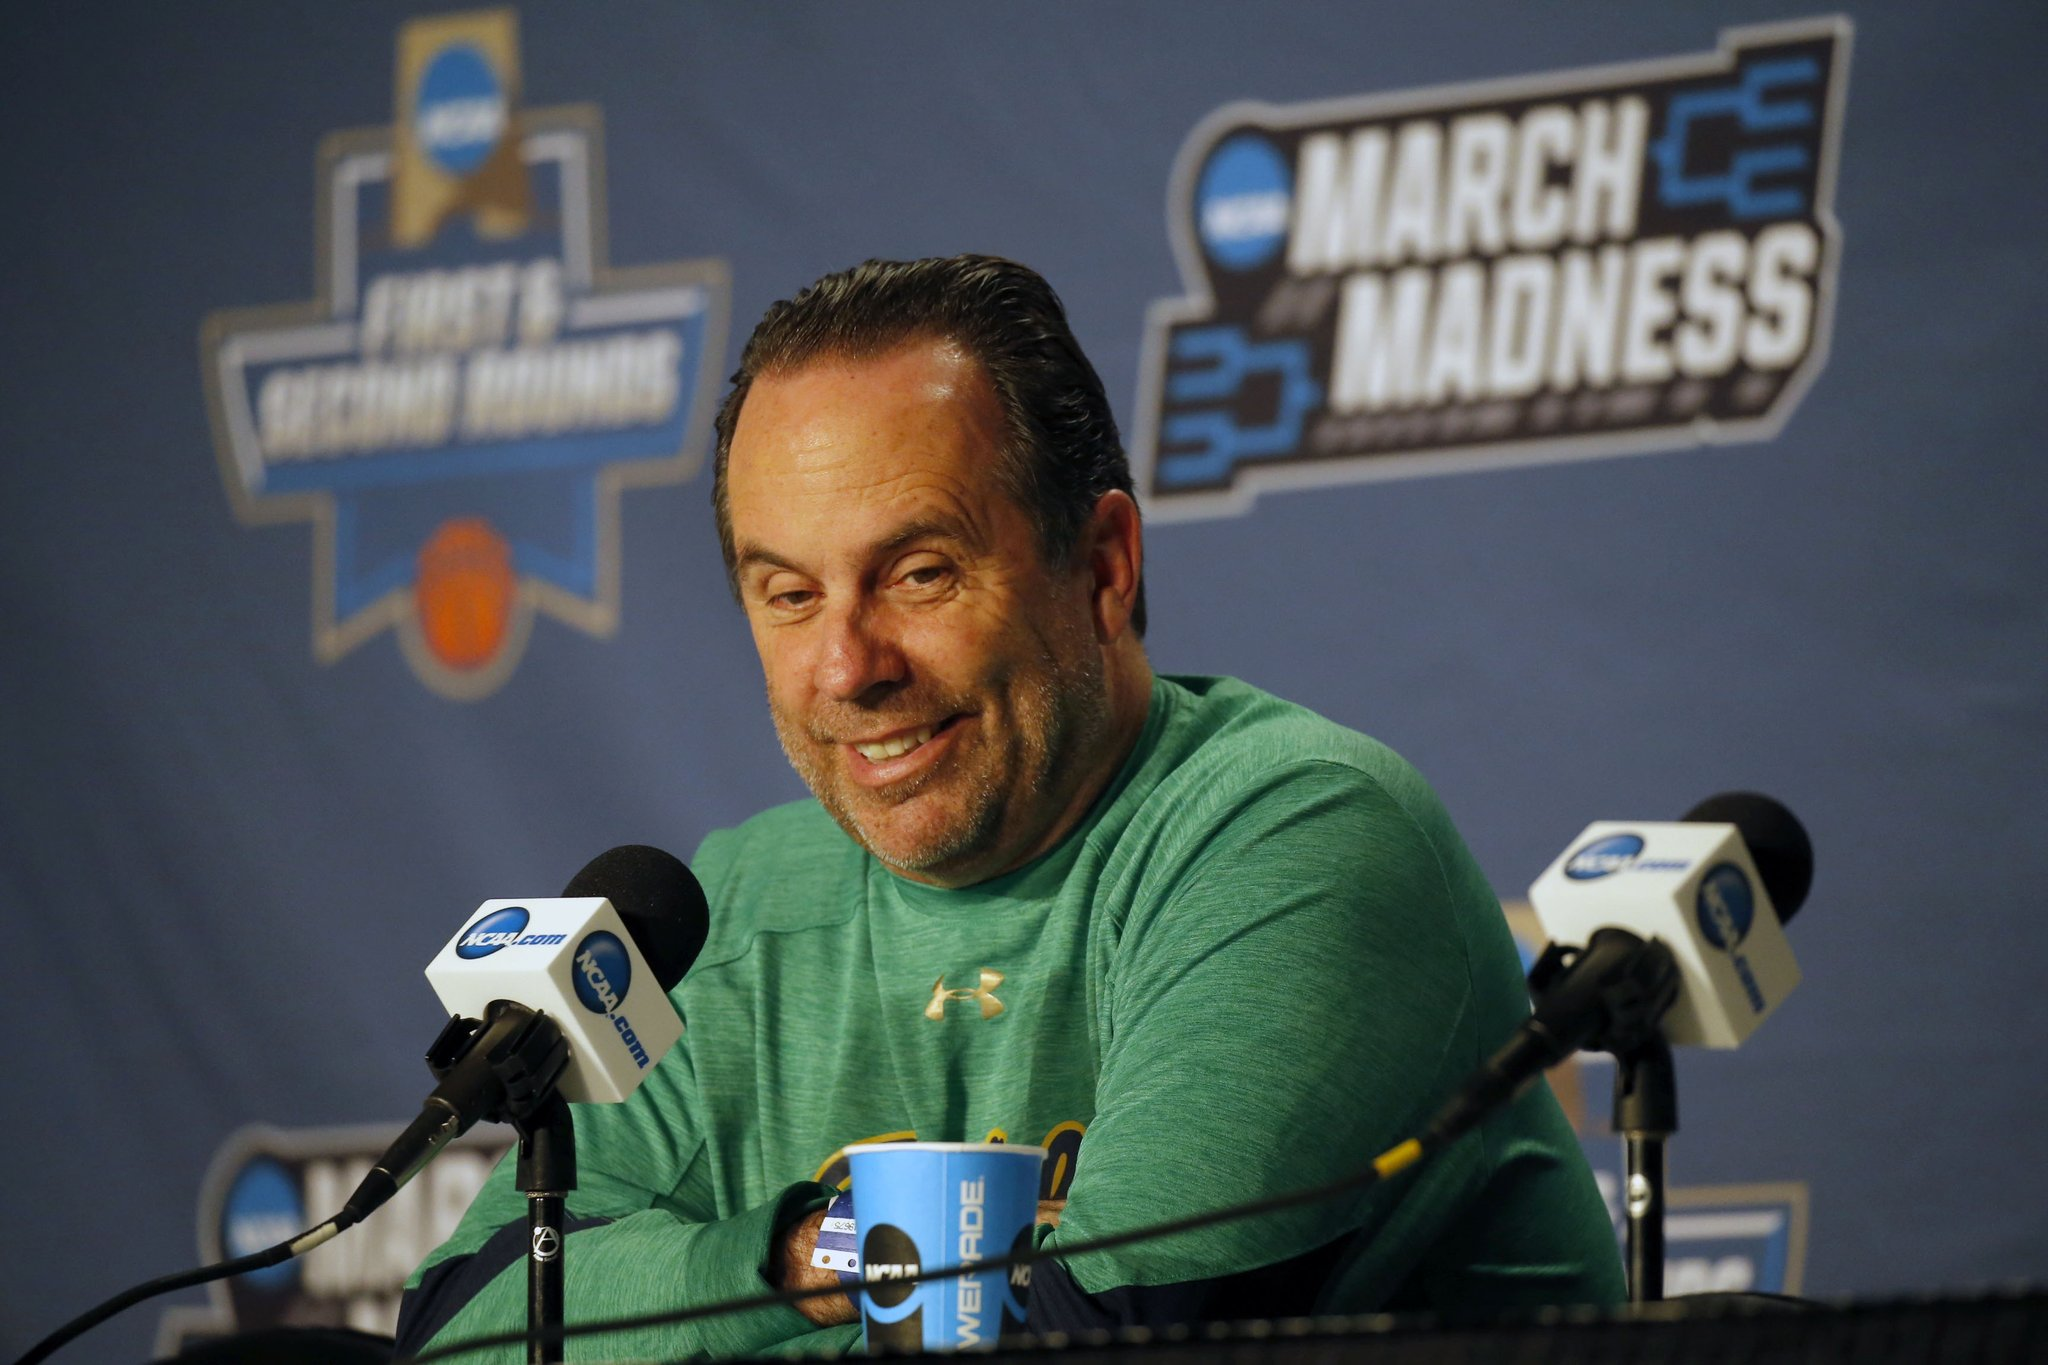 Fighting Irish fans and St. Patty's Day: 'We have some extra bail money just to make sure we can get them out'